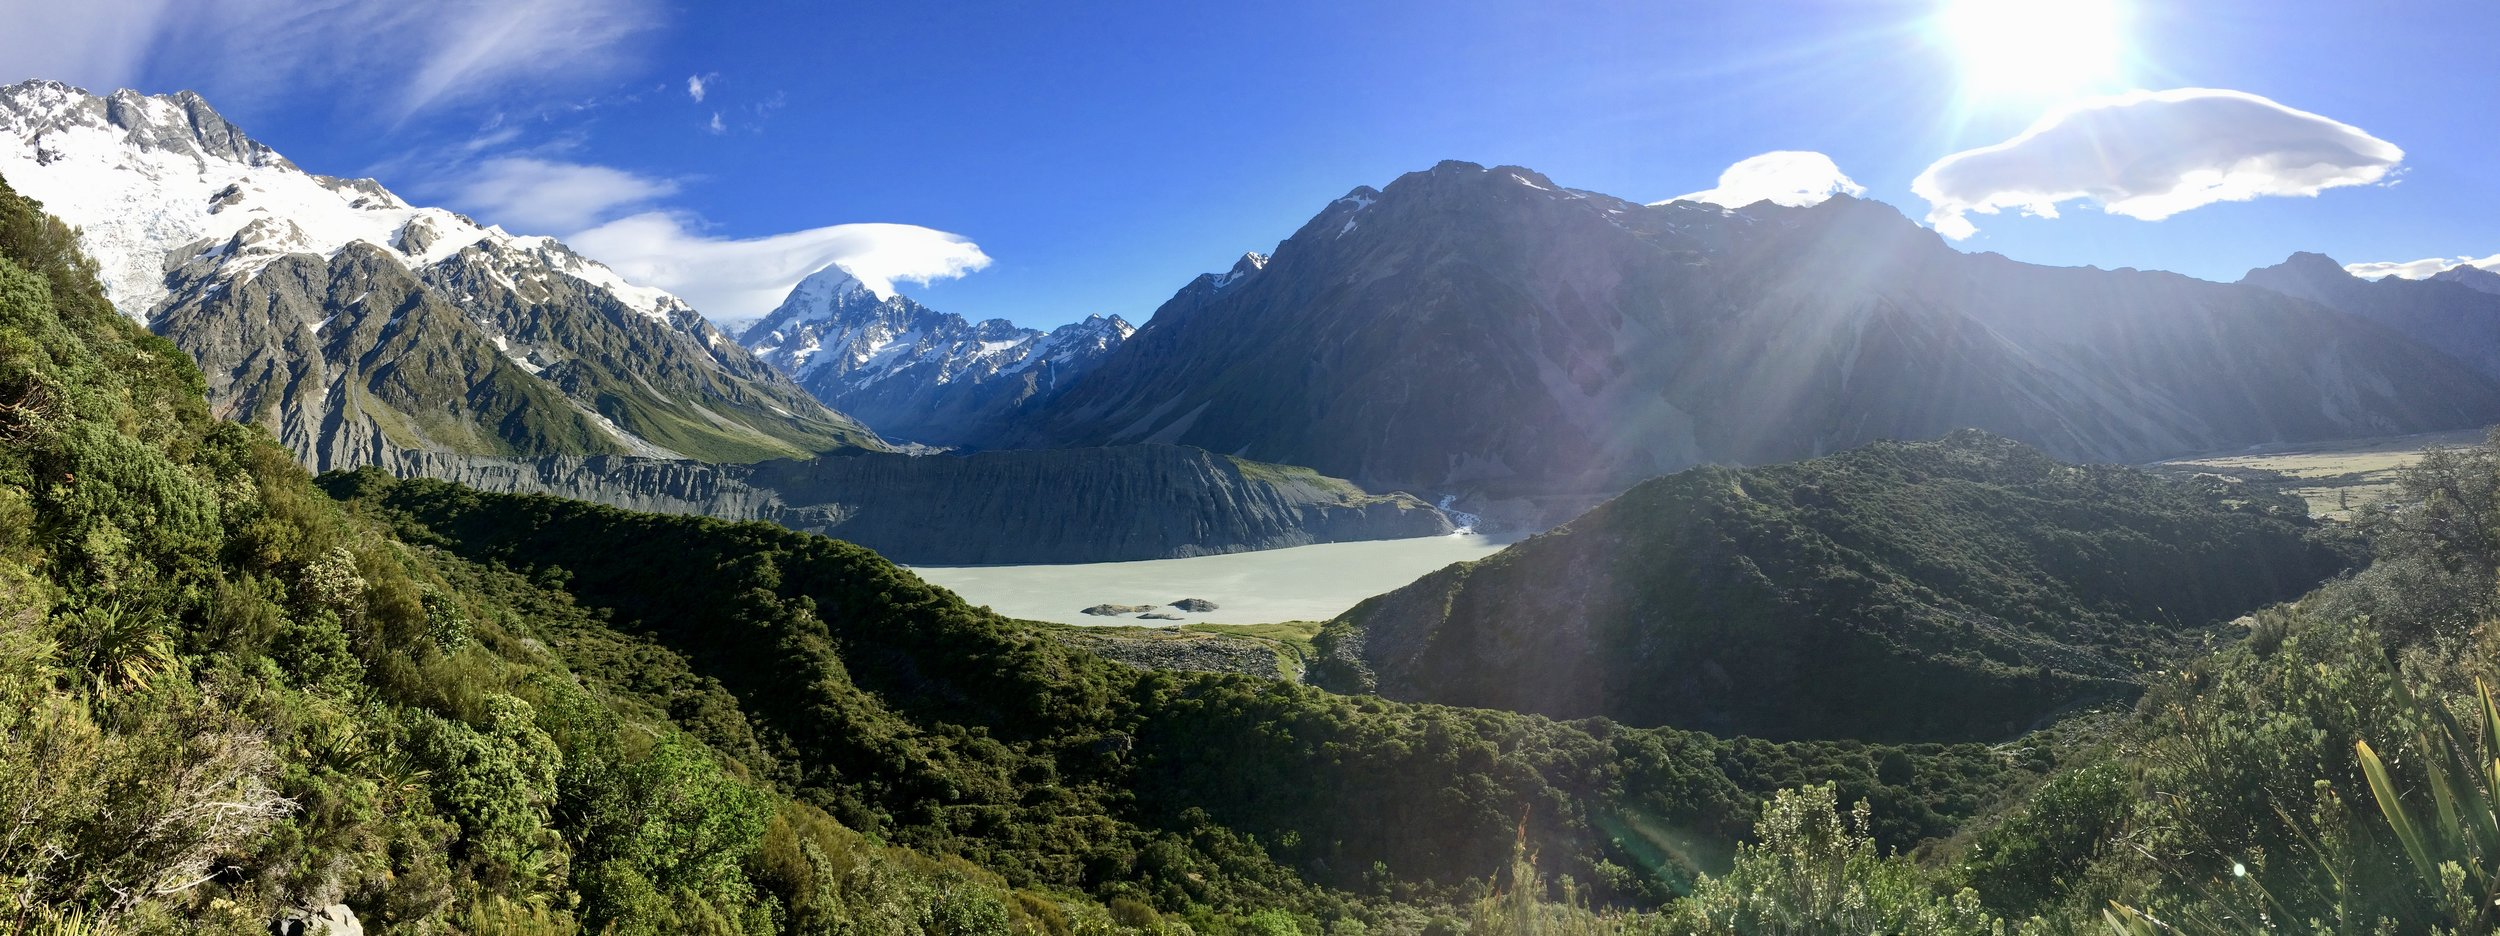 Gorgeous views at Mount Cook National Park.